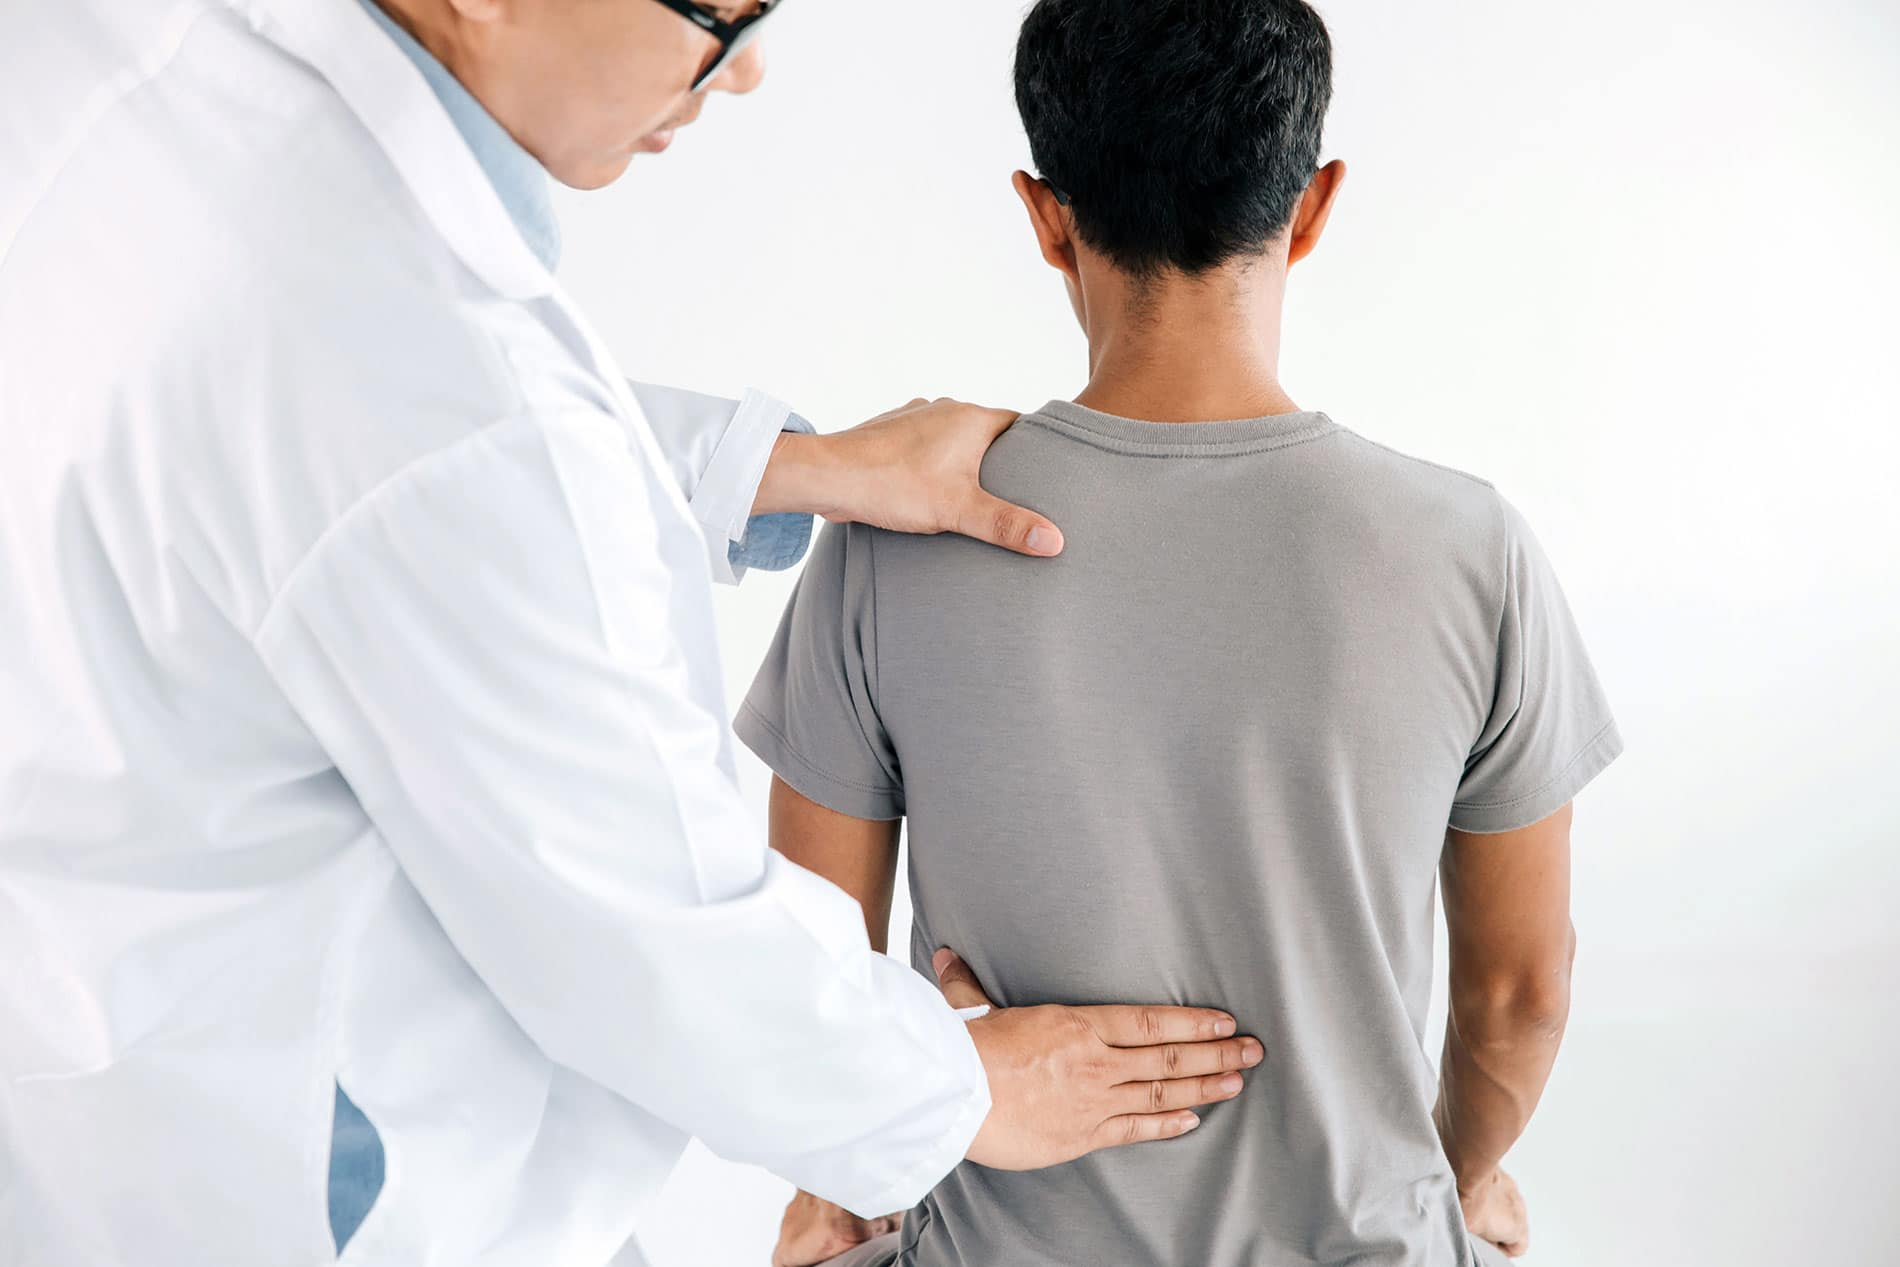 Physiotherapist doing healing chiropractic treatment